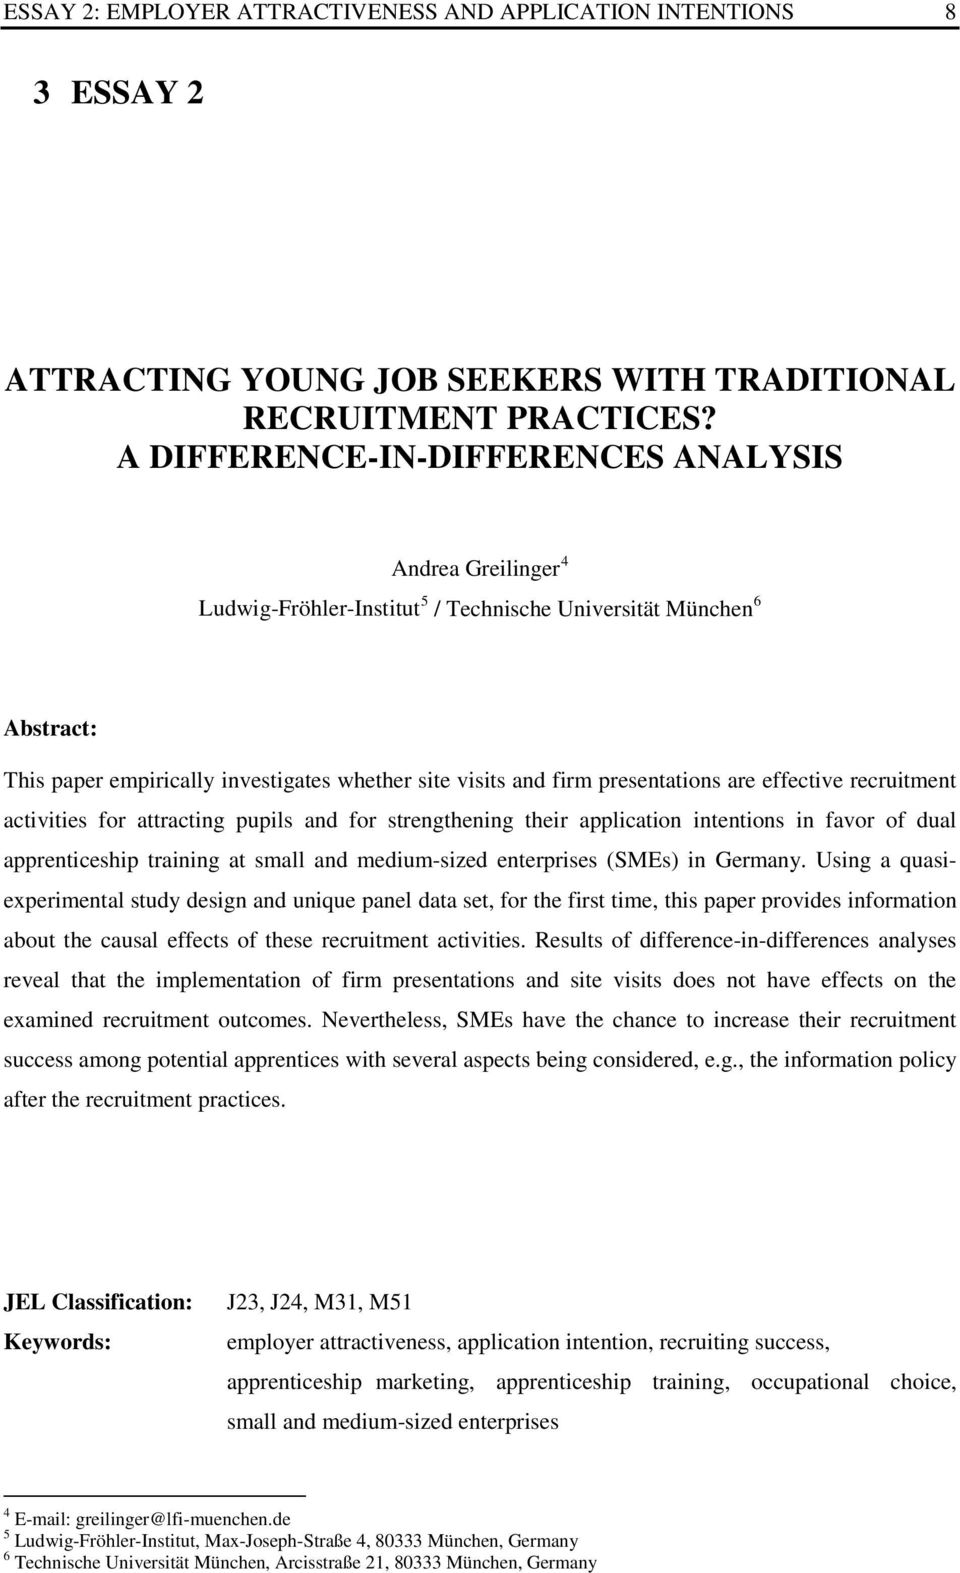 presentations are effective recruitment activities for attracting pupils and for strengthening their application intentions in favor of dual apprenticeship training at small and medium-sized